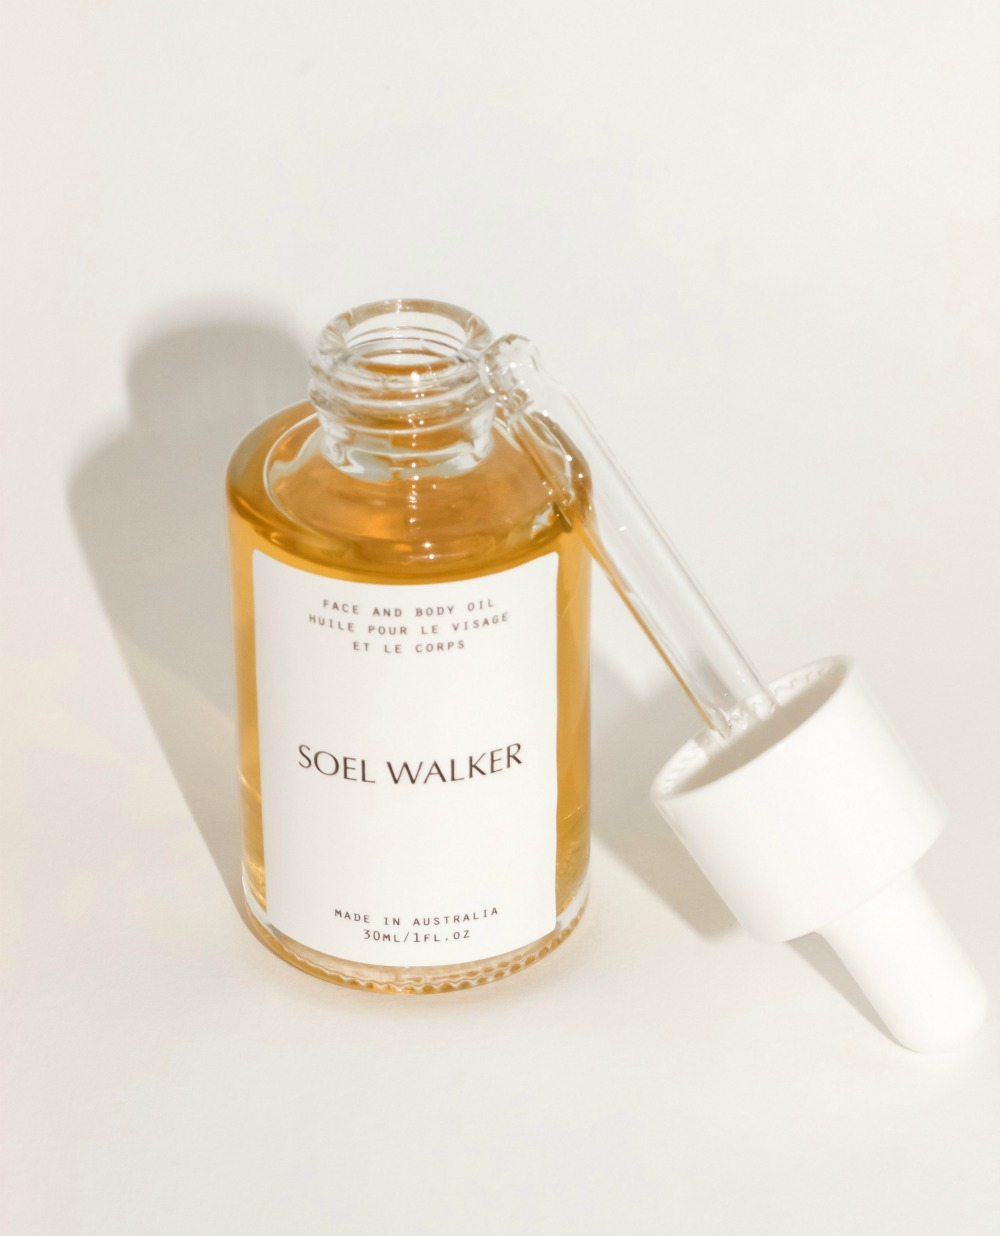 Soel Walker     www.soelwalker.com    Rich in vitamins and essential oils,  Soel Walker's  products are made in small batches from natural ingredients, with the aim to leave your skin supple.